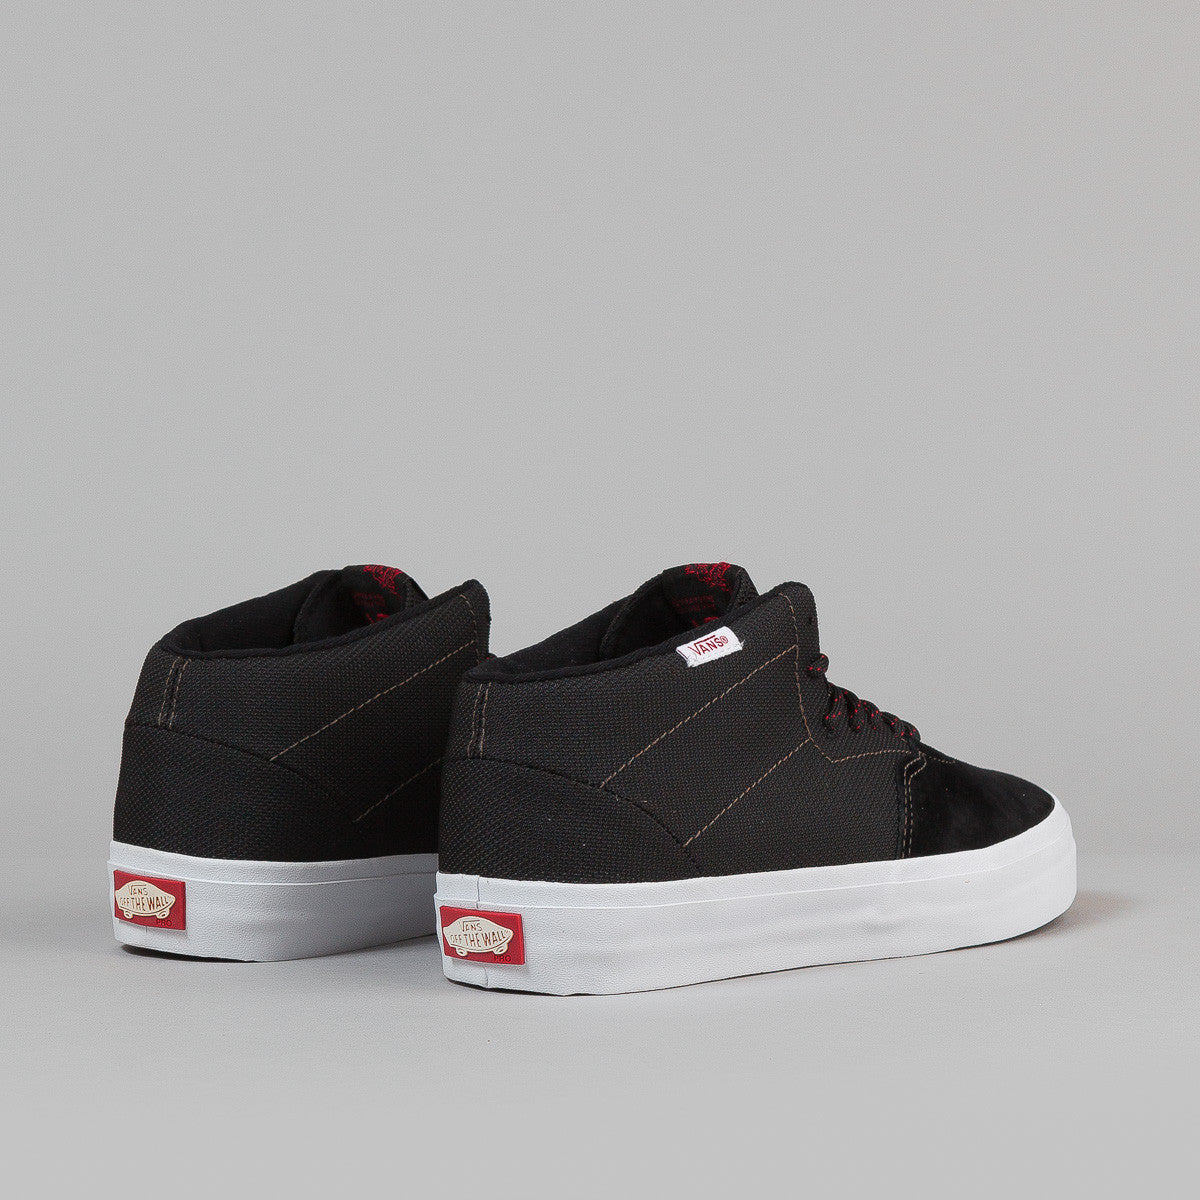 Vans Cab Lite Shoes - Black / Scarlet